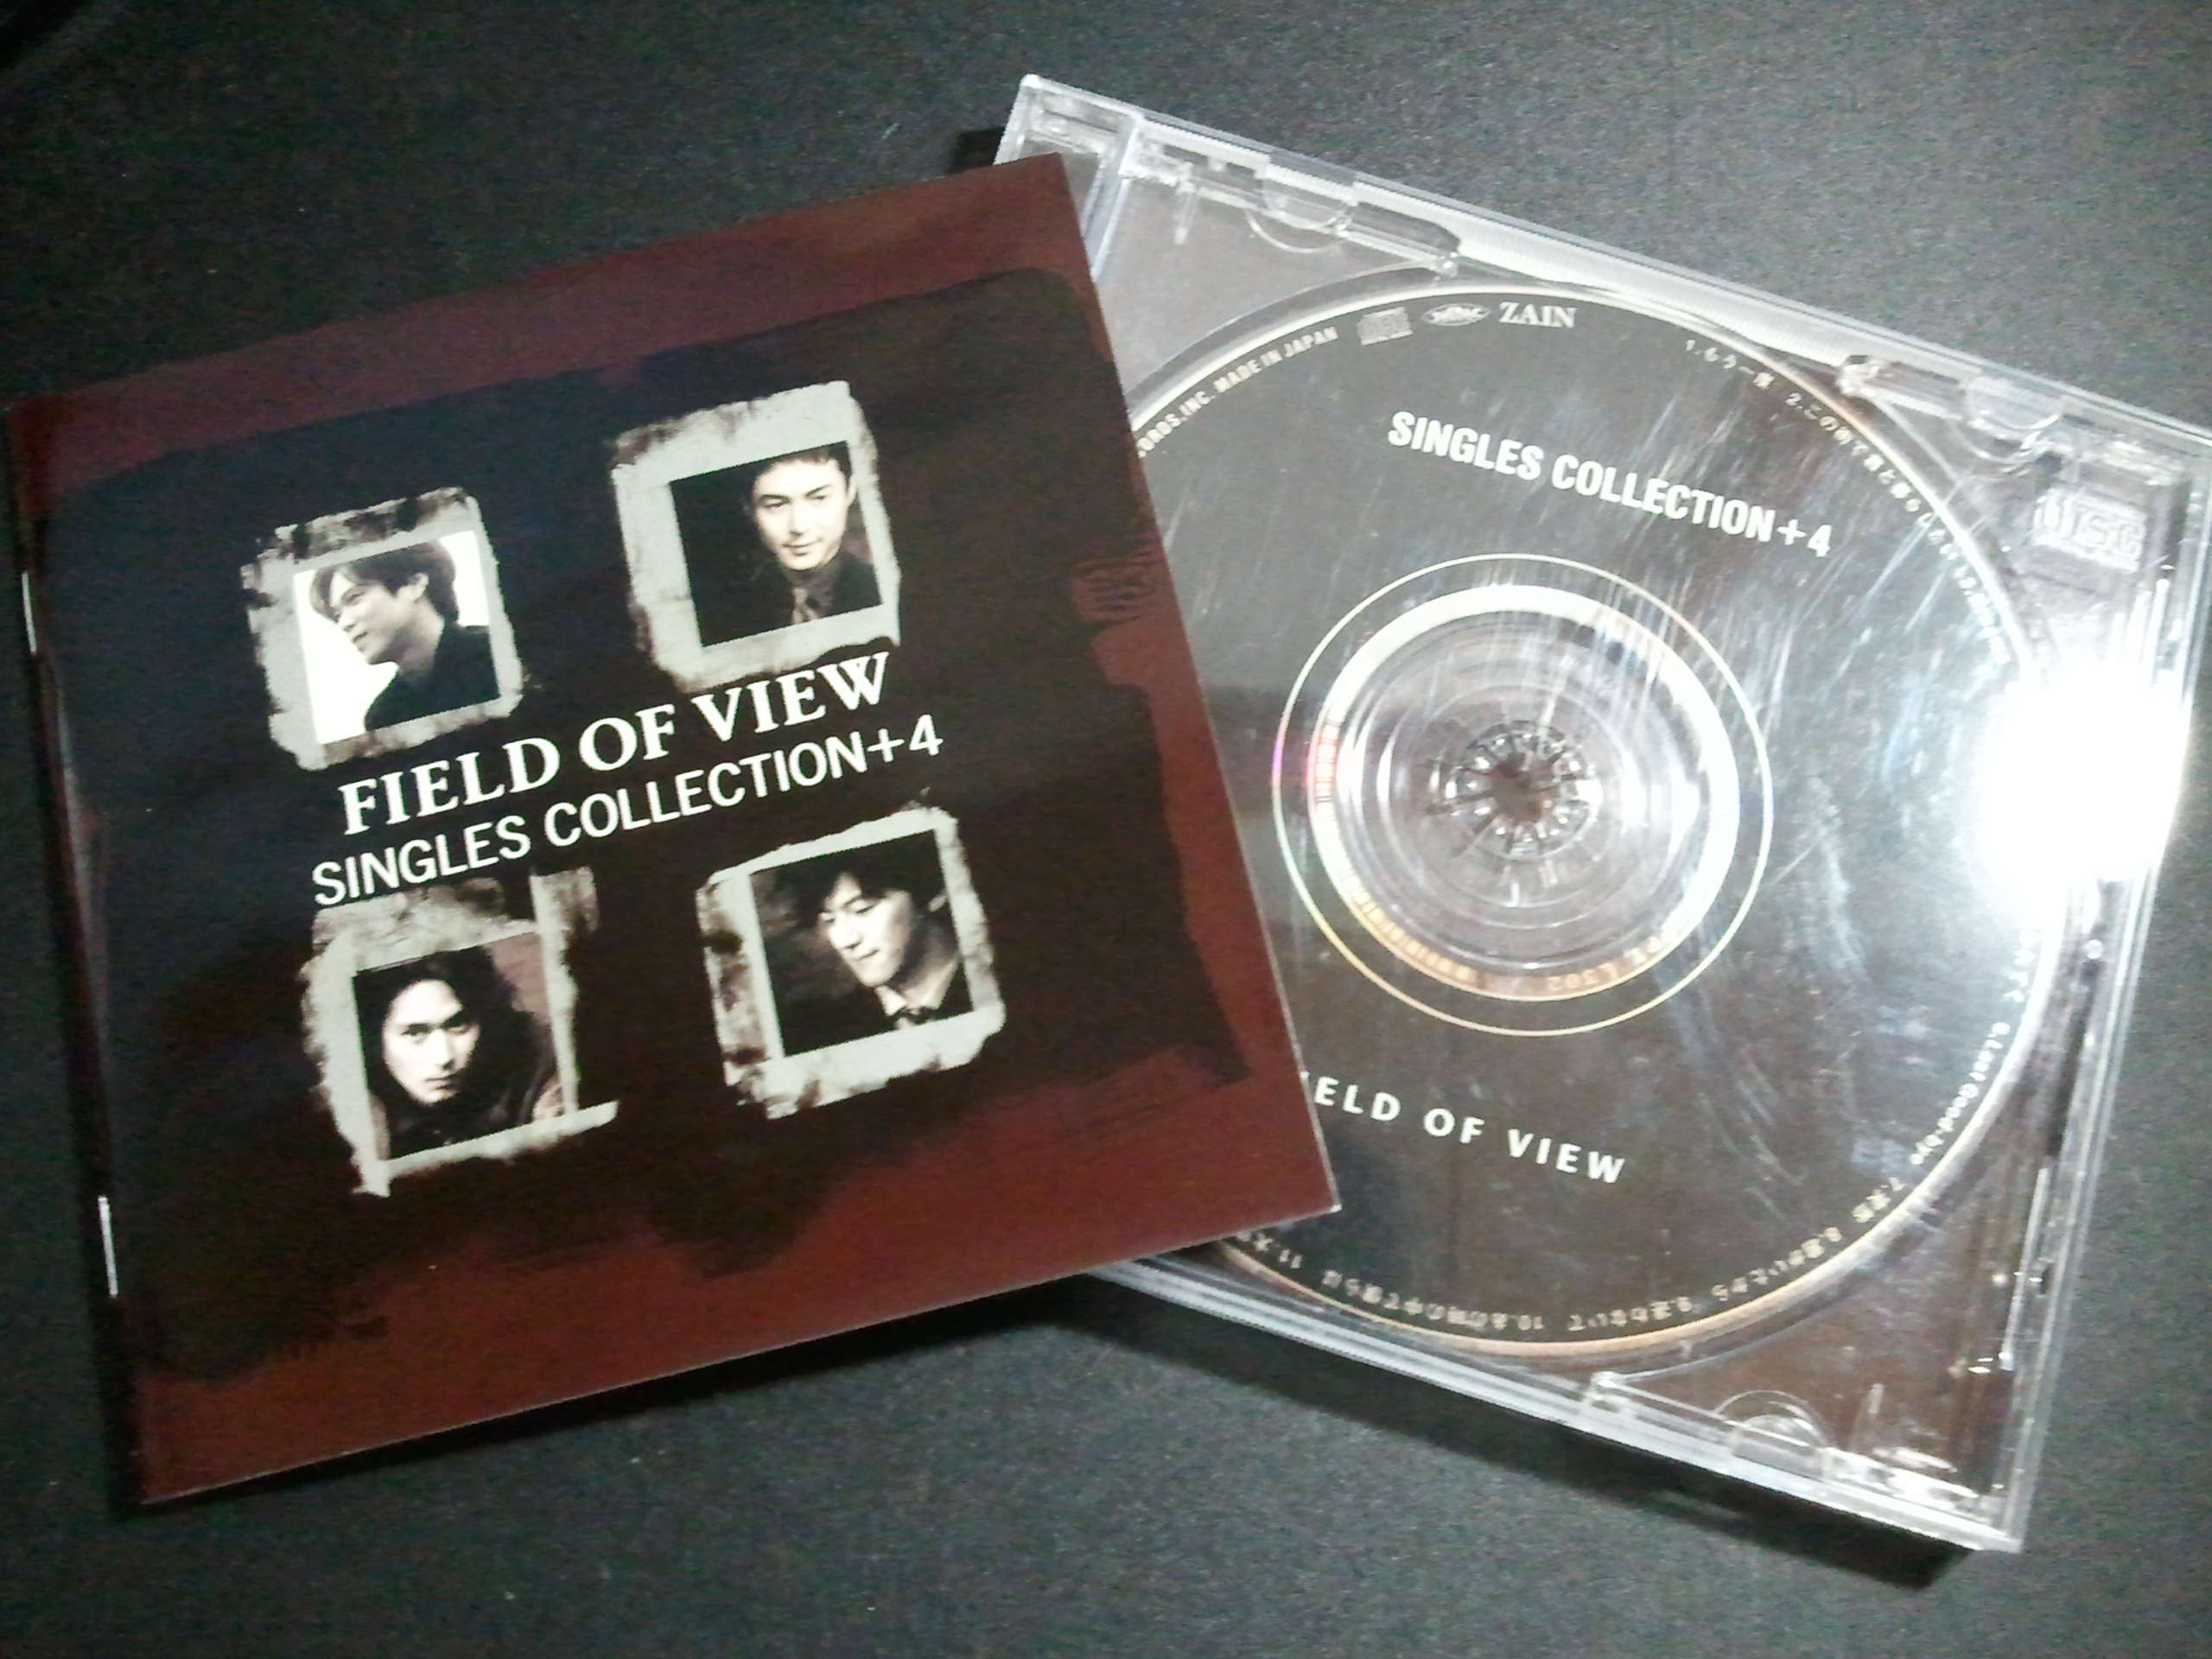 FIELD OF VIEW Single Collection plus 4